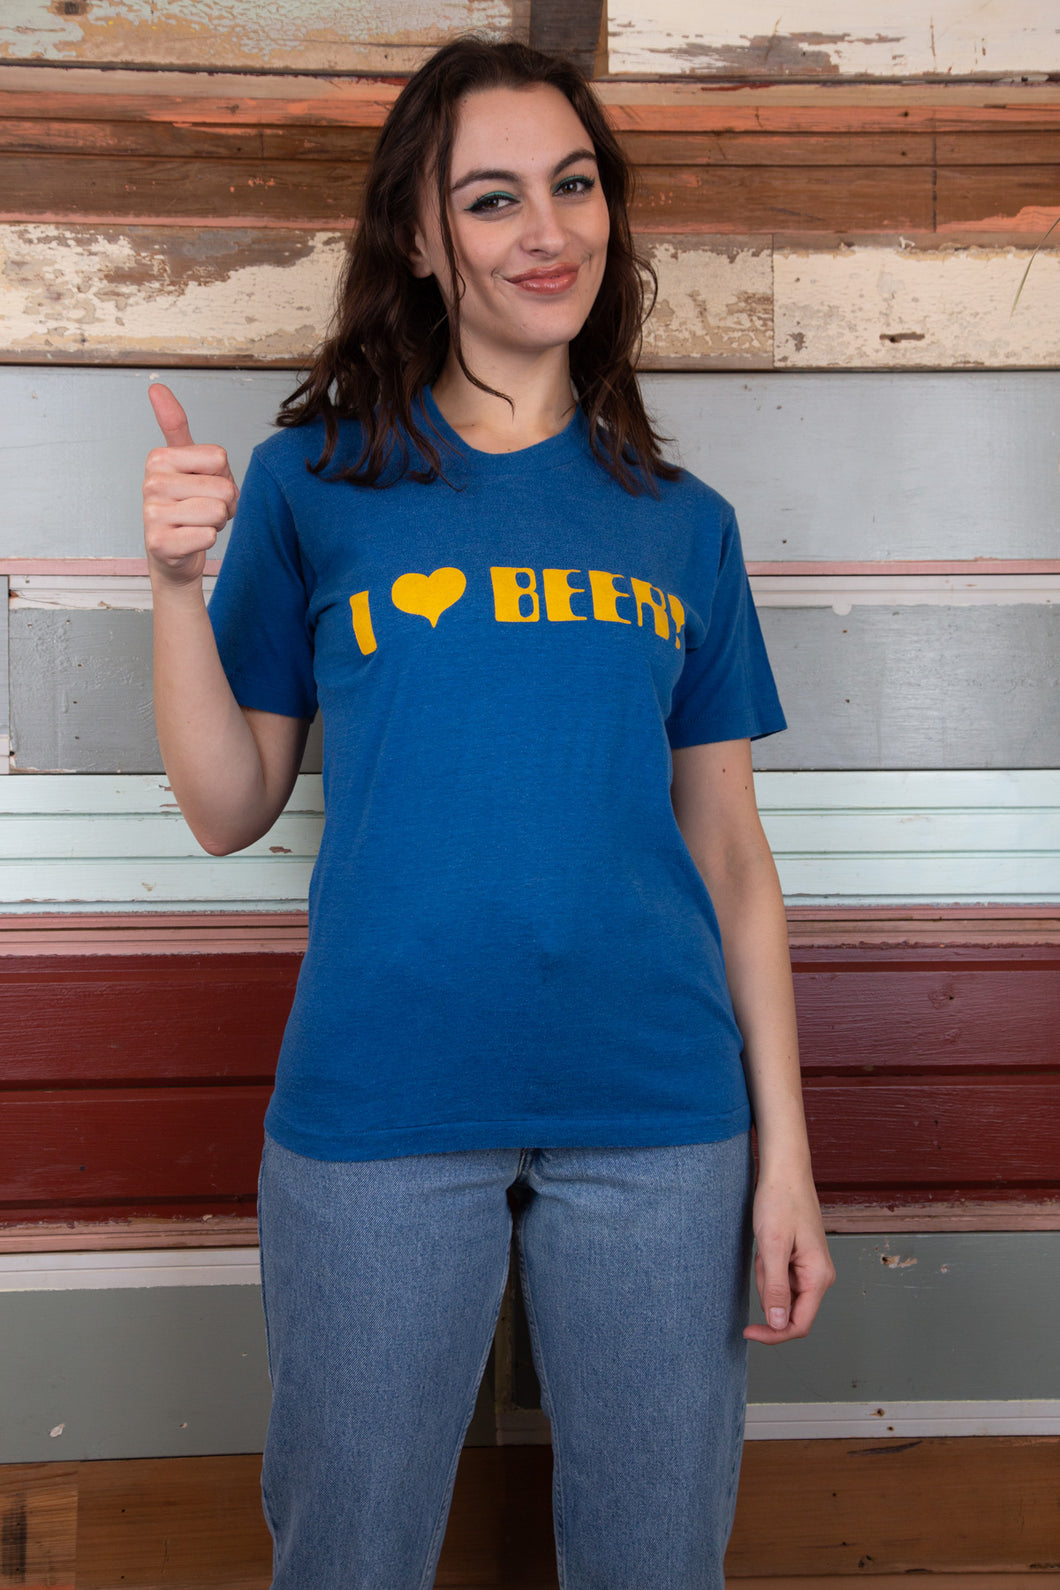 model is wearing a blue tee that features a printed logo on the front saying